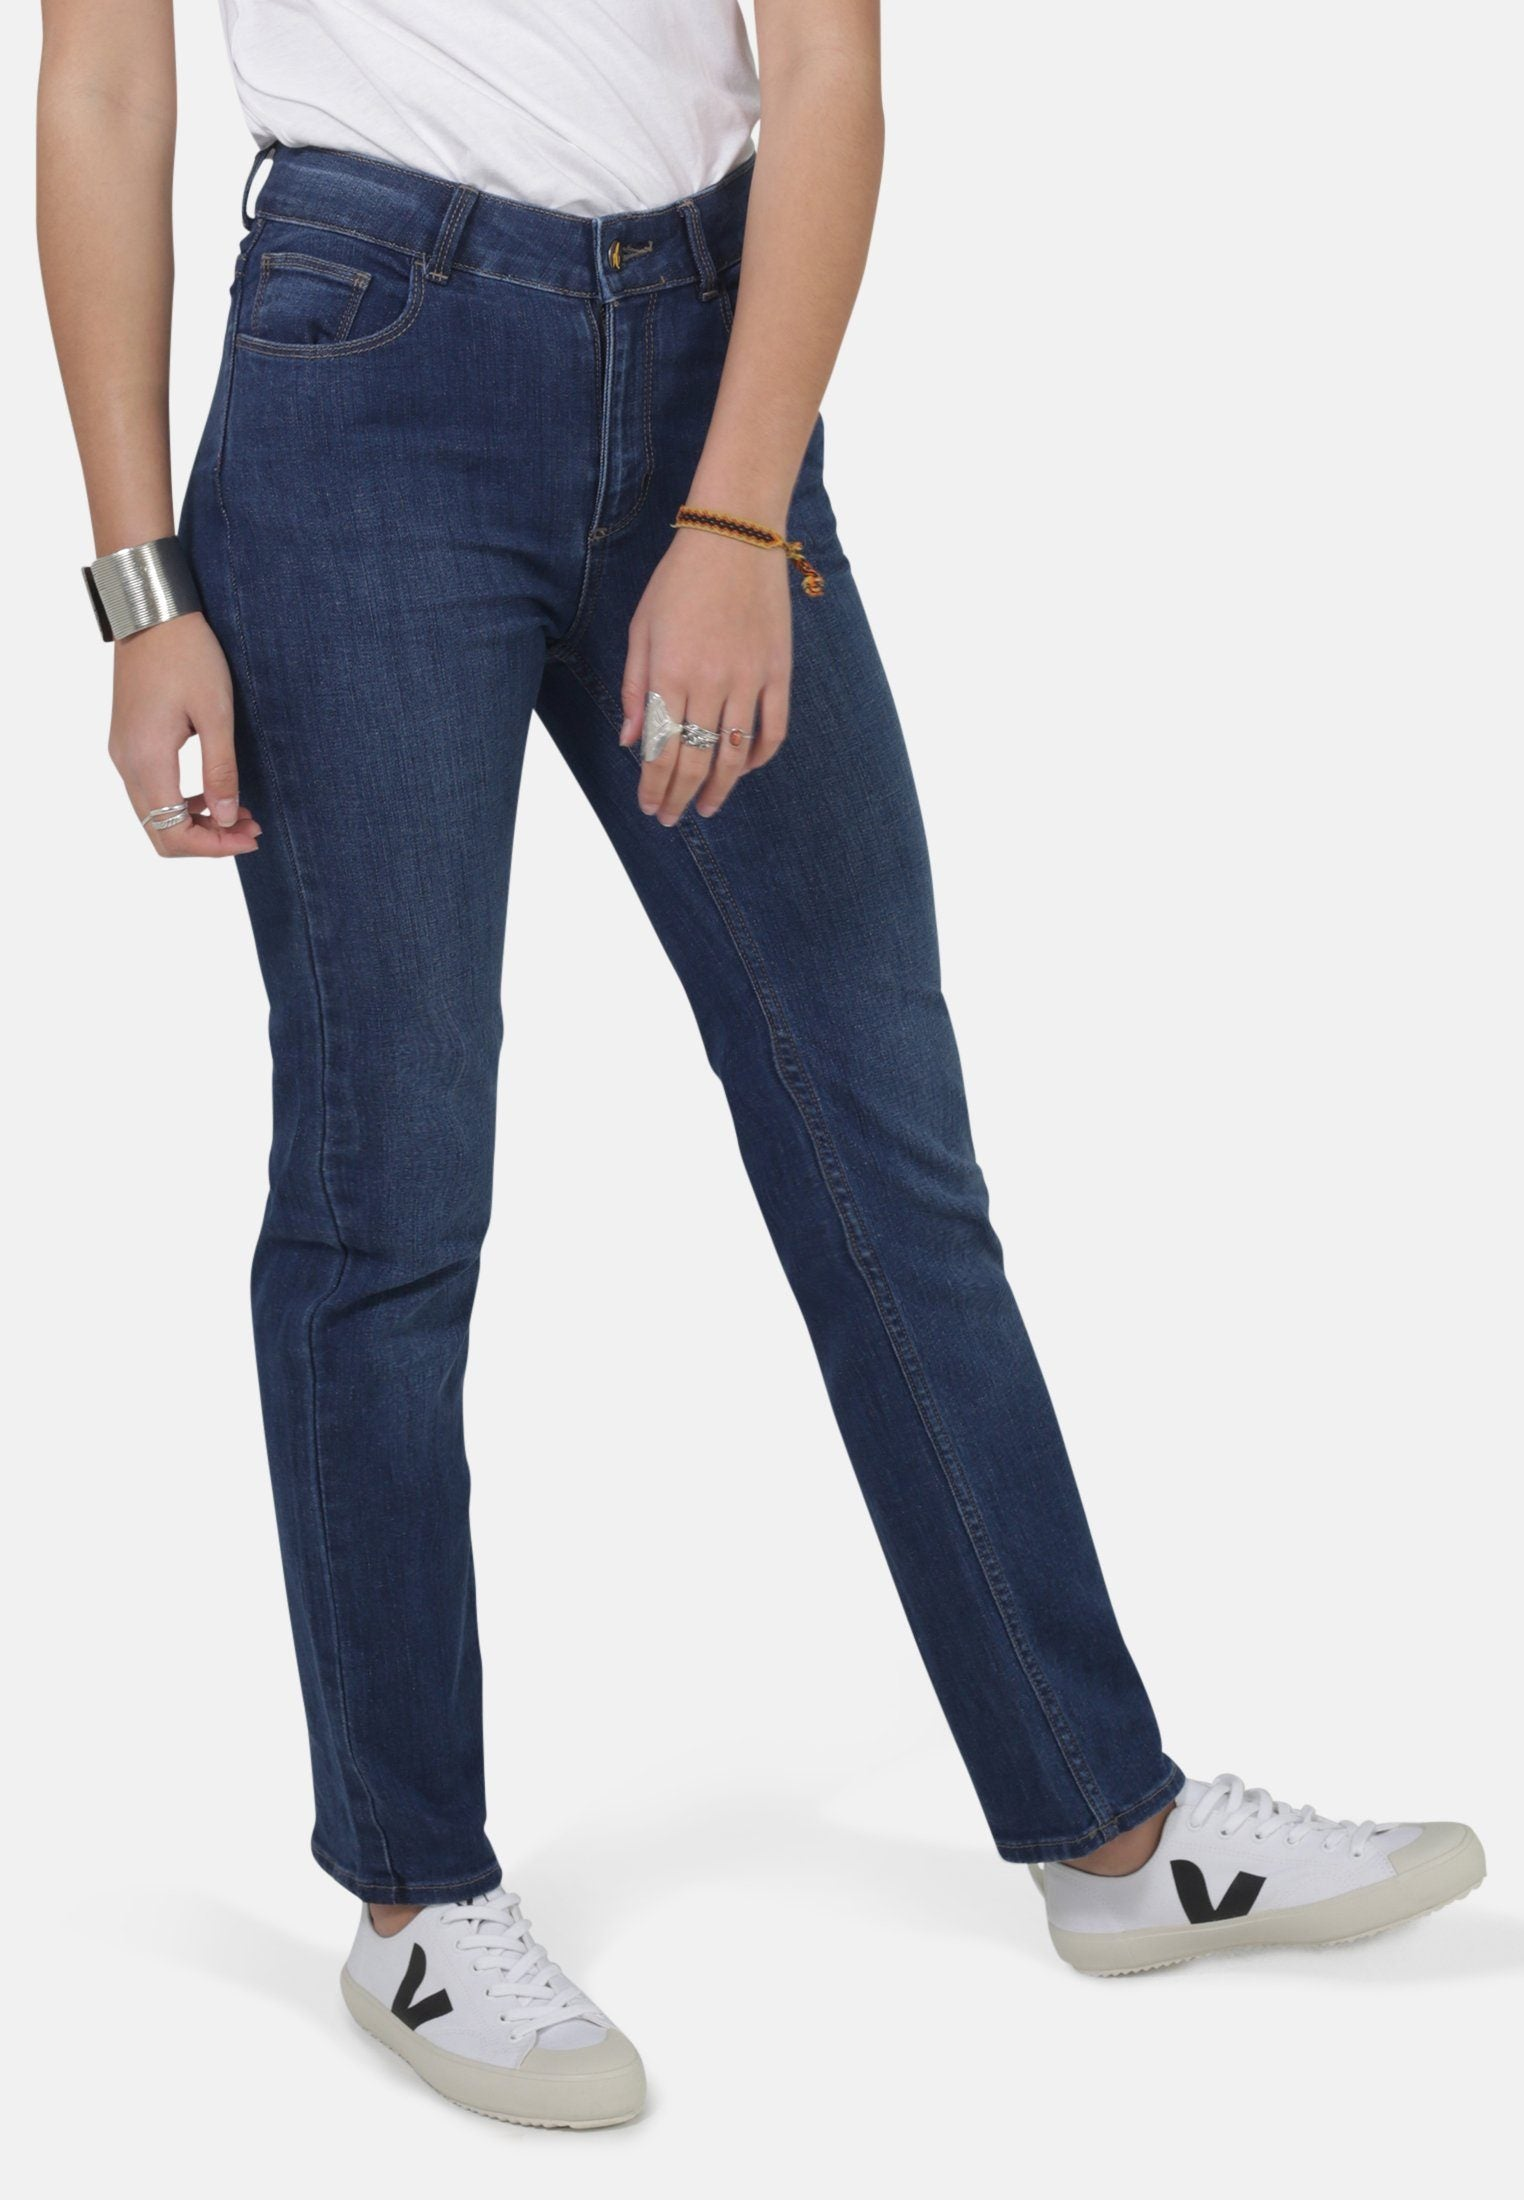 Jeans - MONKEE Womens Organic Jean Emily In Dark